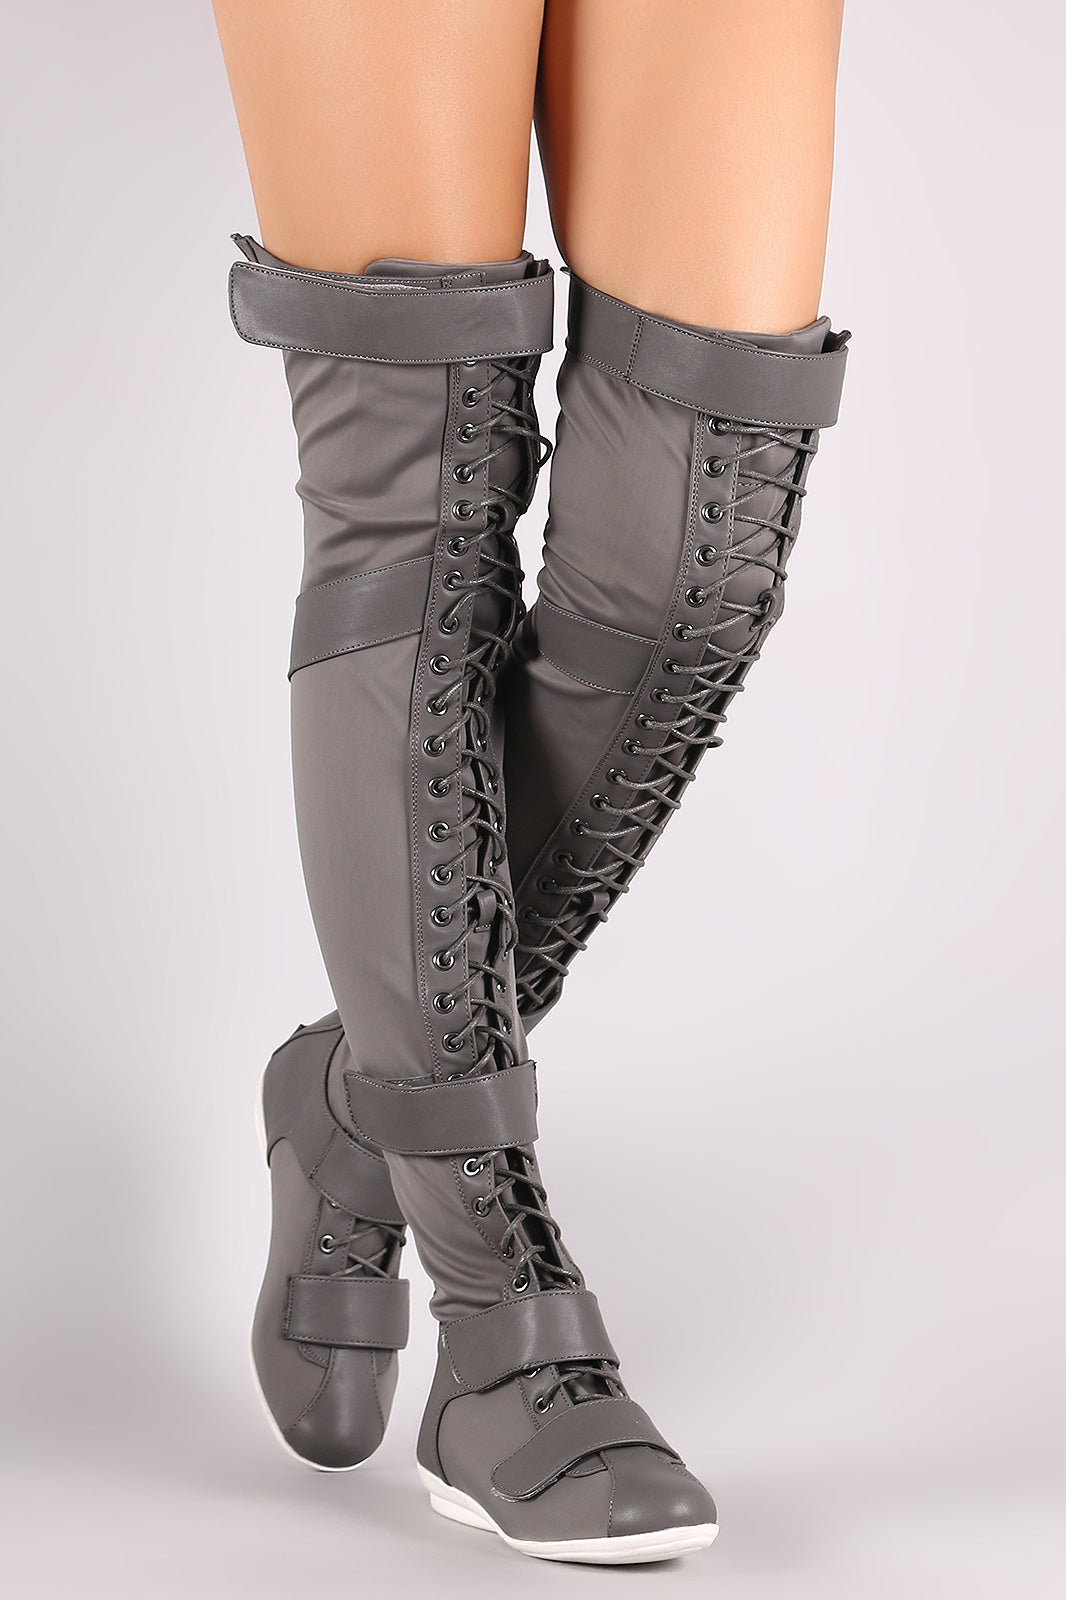 Liliana Hook And Loop Lace Up Strappy Over-The-Knee Flat Boots